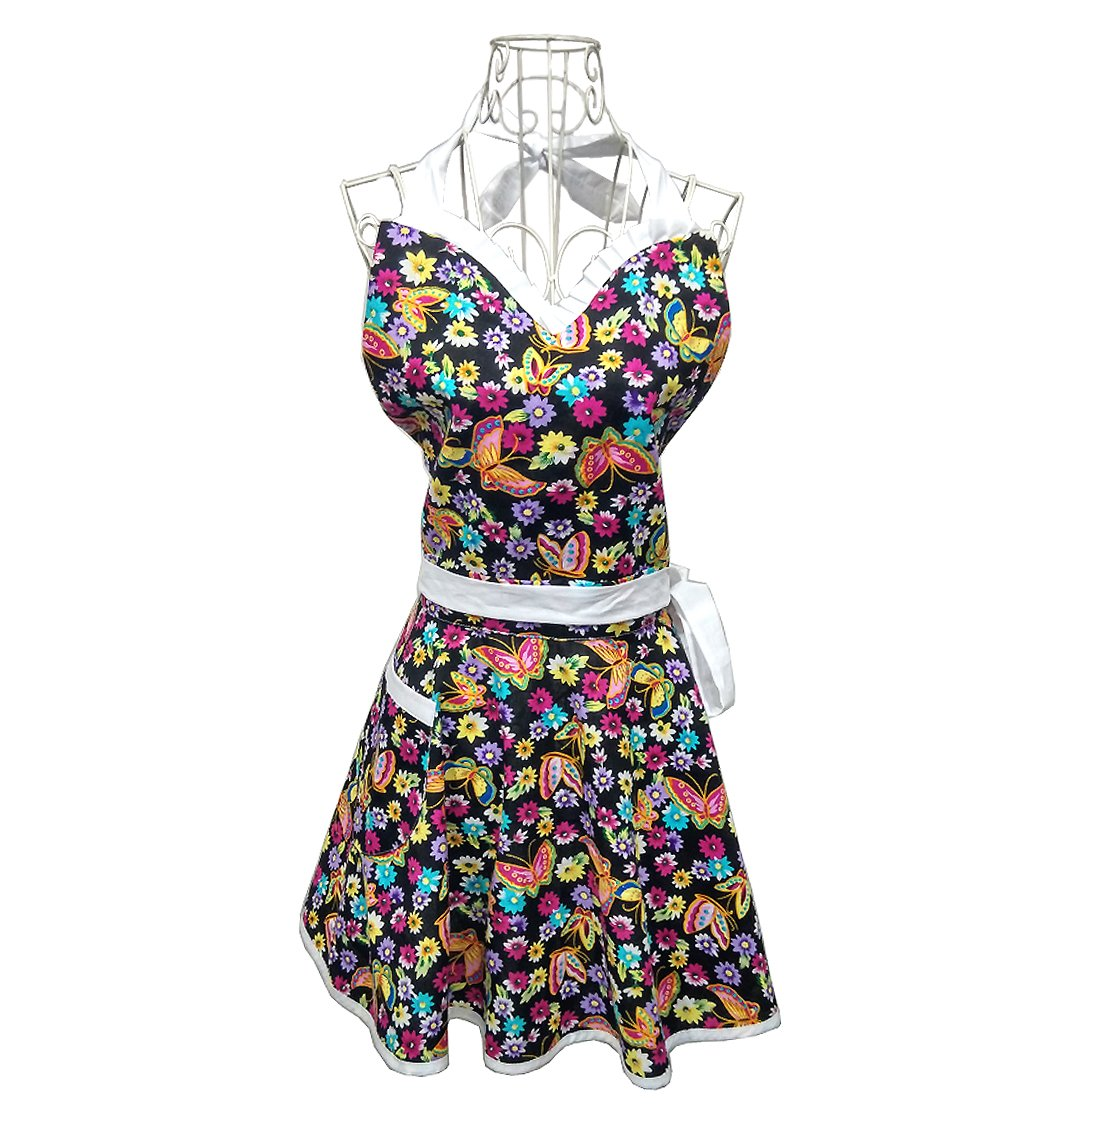 Hot Stylish Flower Pattern Women's Fashion Floral Cotton Chef Cooking Cook Apron Bib with Pocket